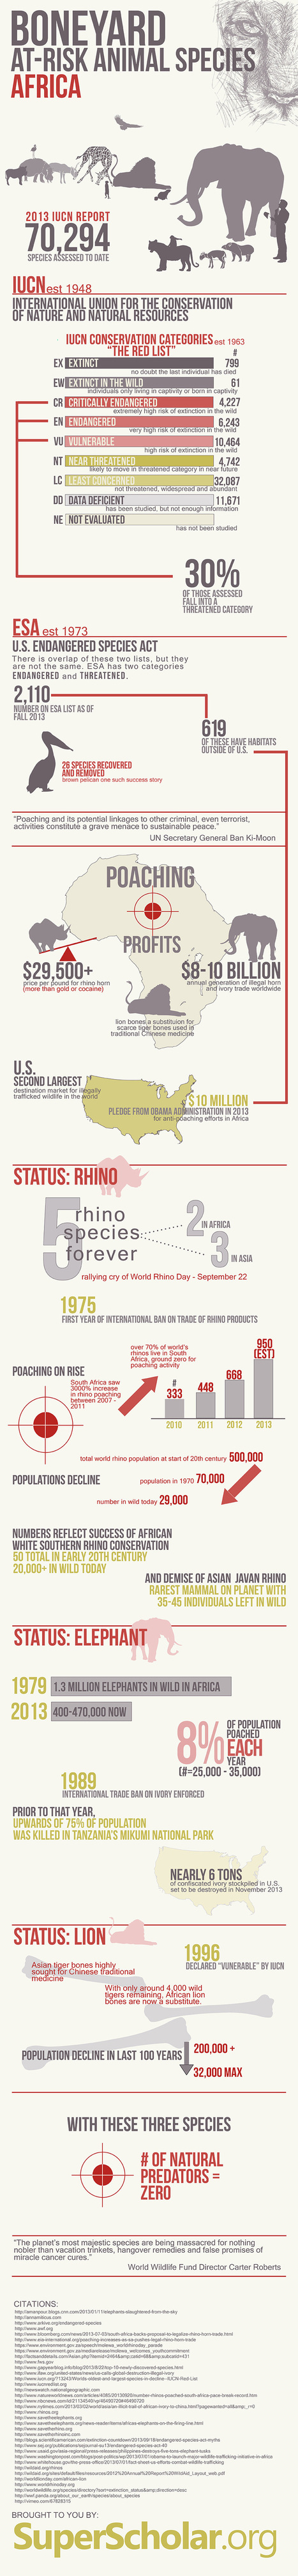 Animal Species At Risk in Africa | Wildlife Trafficking: Who Does it? Allows it? | Scoop.it